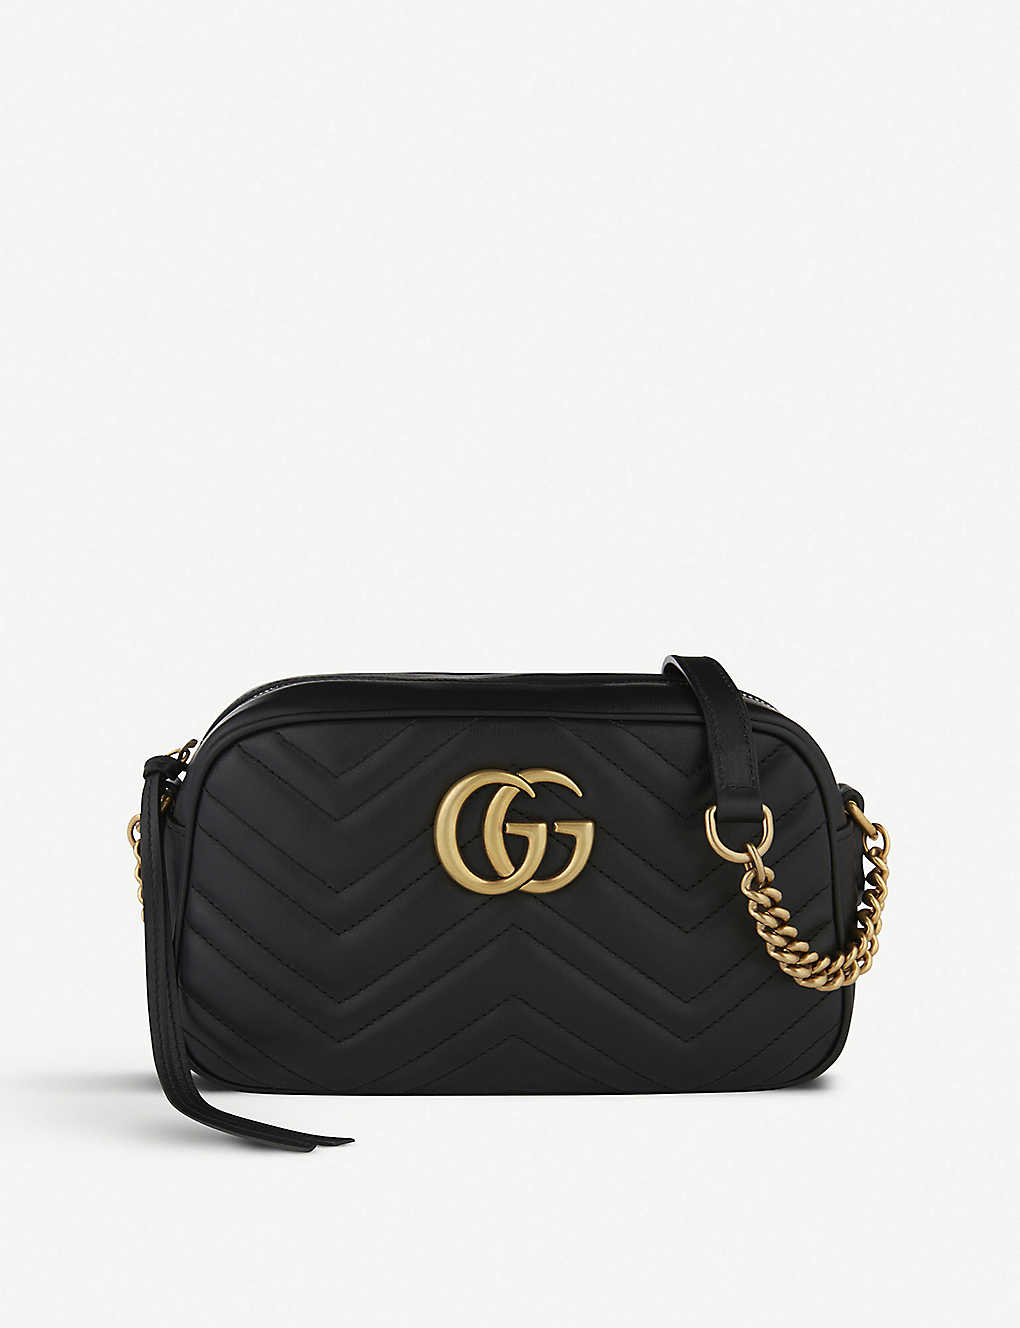 fb660f8bb86 GUCCI - Marmont matelassé leather shoulder bag